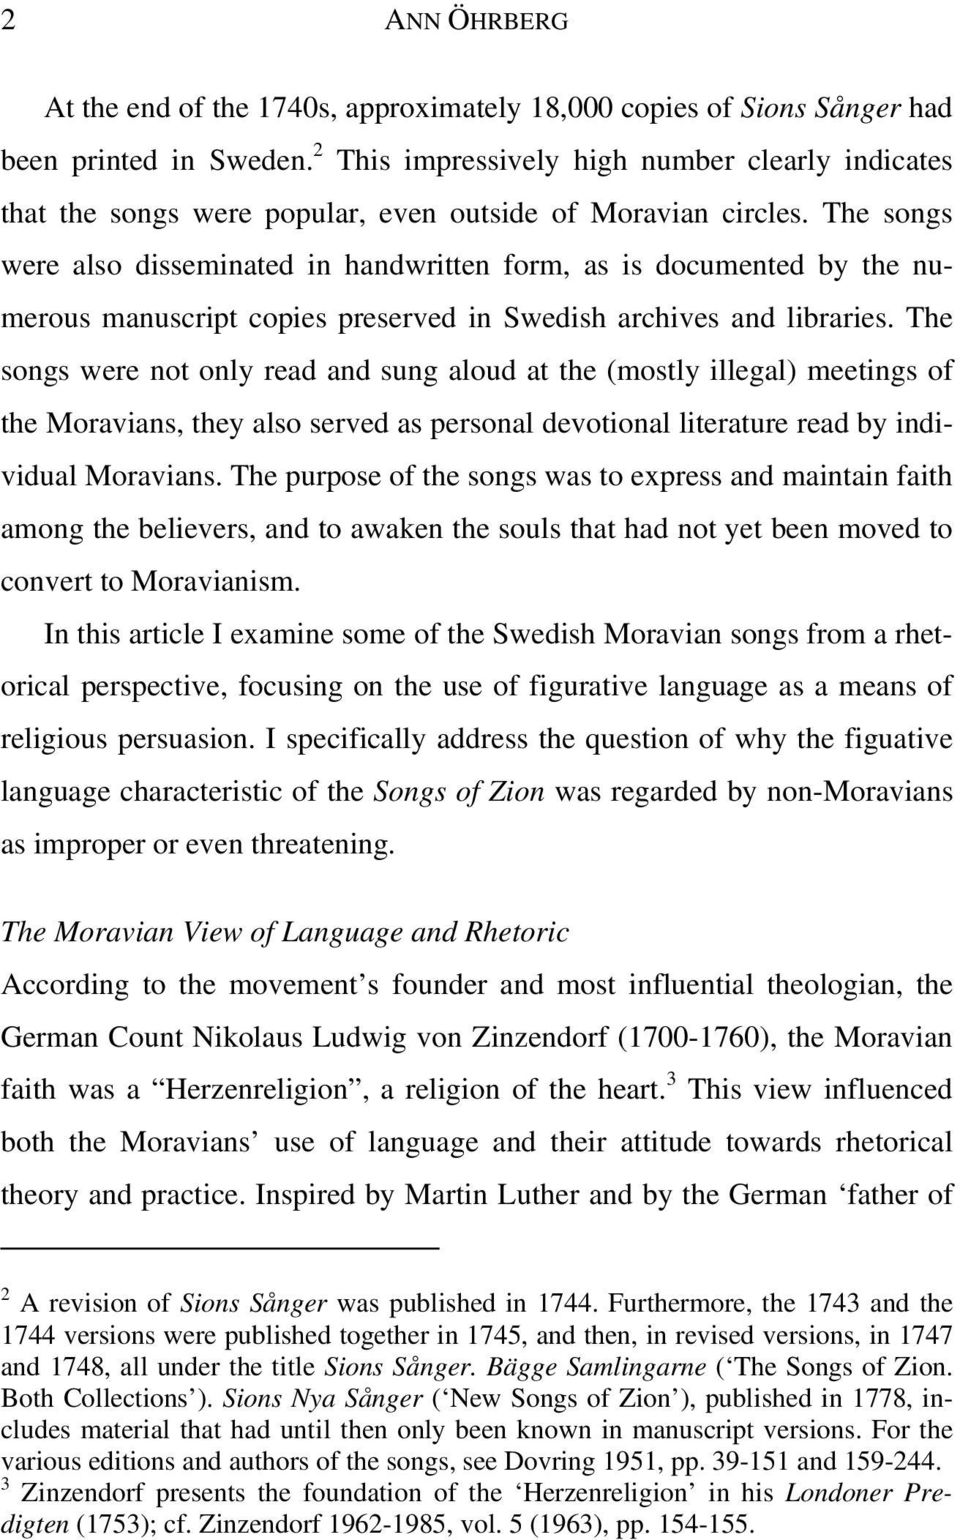 The songs were also disseminated in handwritten form, as is documented by the numerous manuscript copies preserved in Swedish archives and libraries.